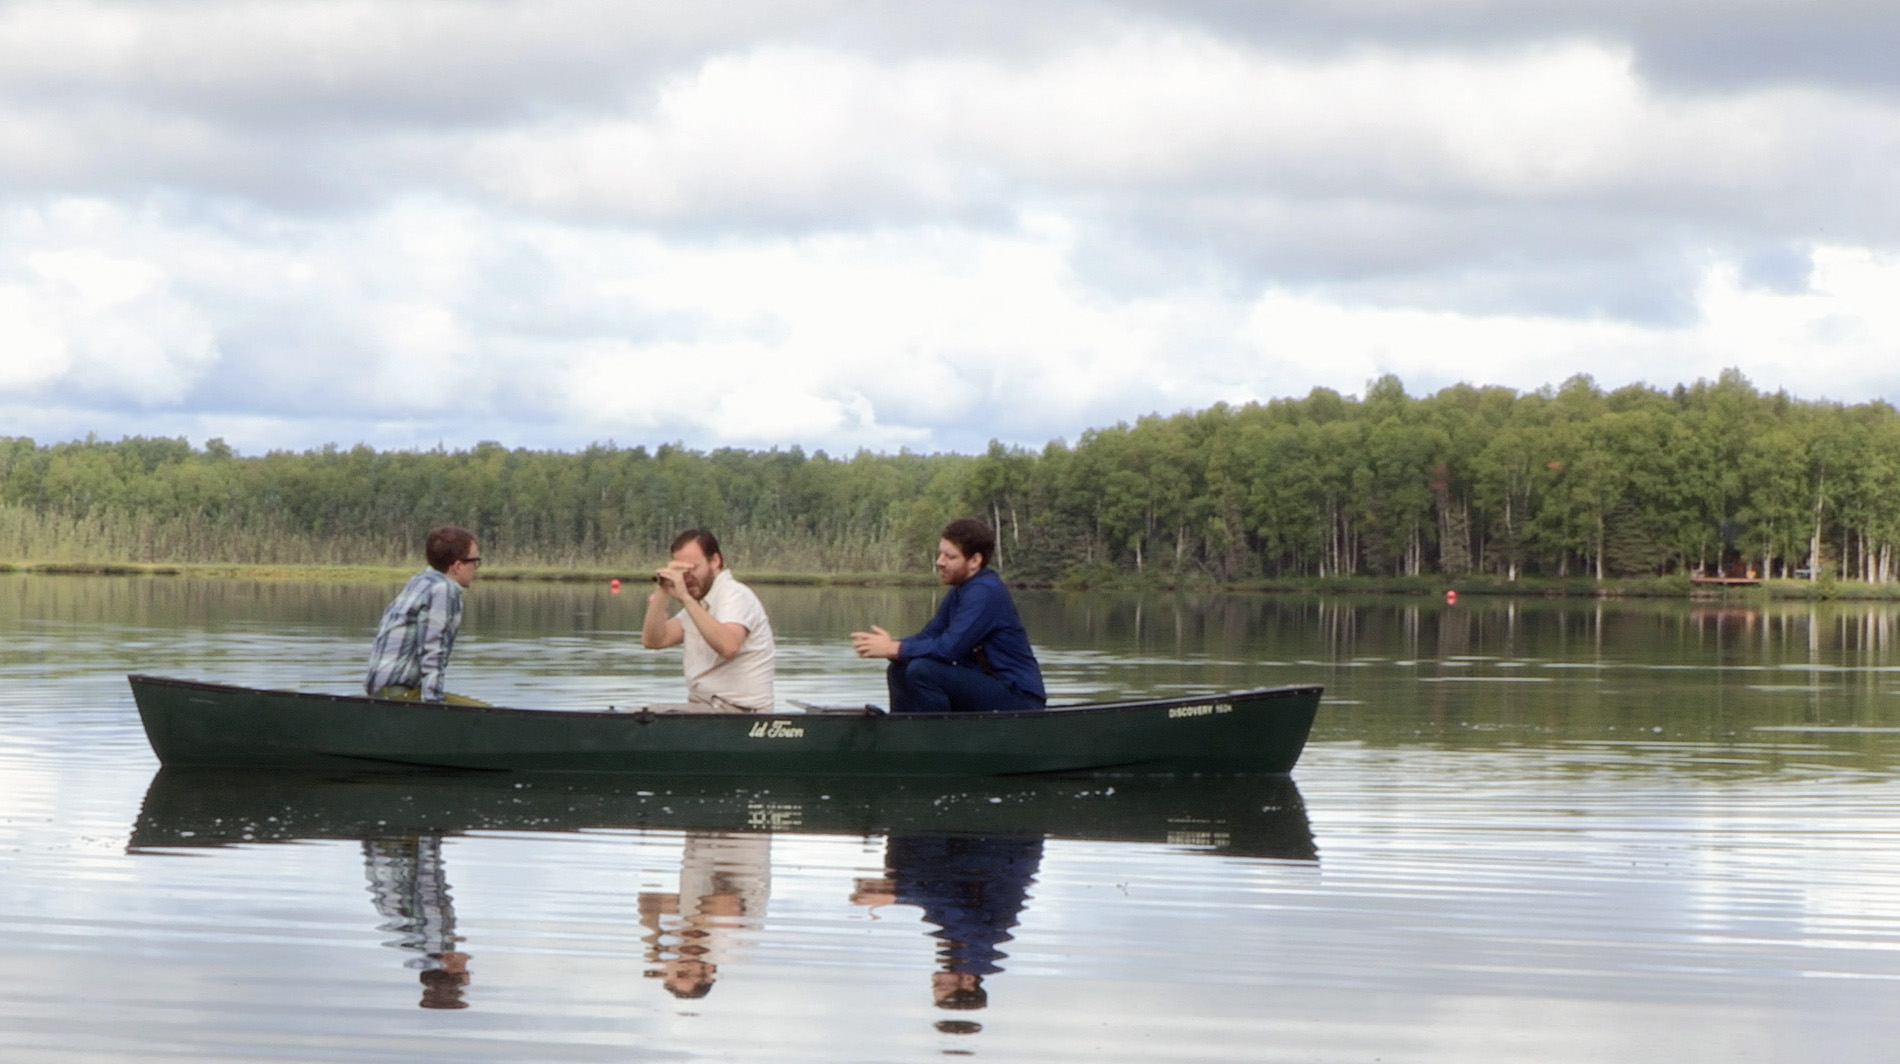 Mathew Clay Henry Kaiser and Adam McCabe in boat copy.jpg